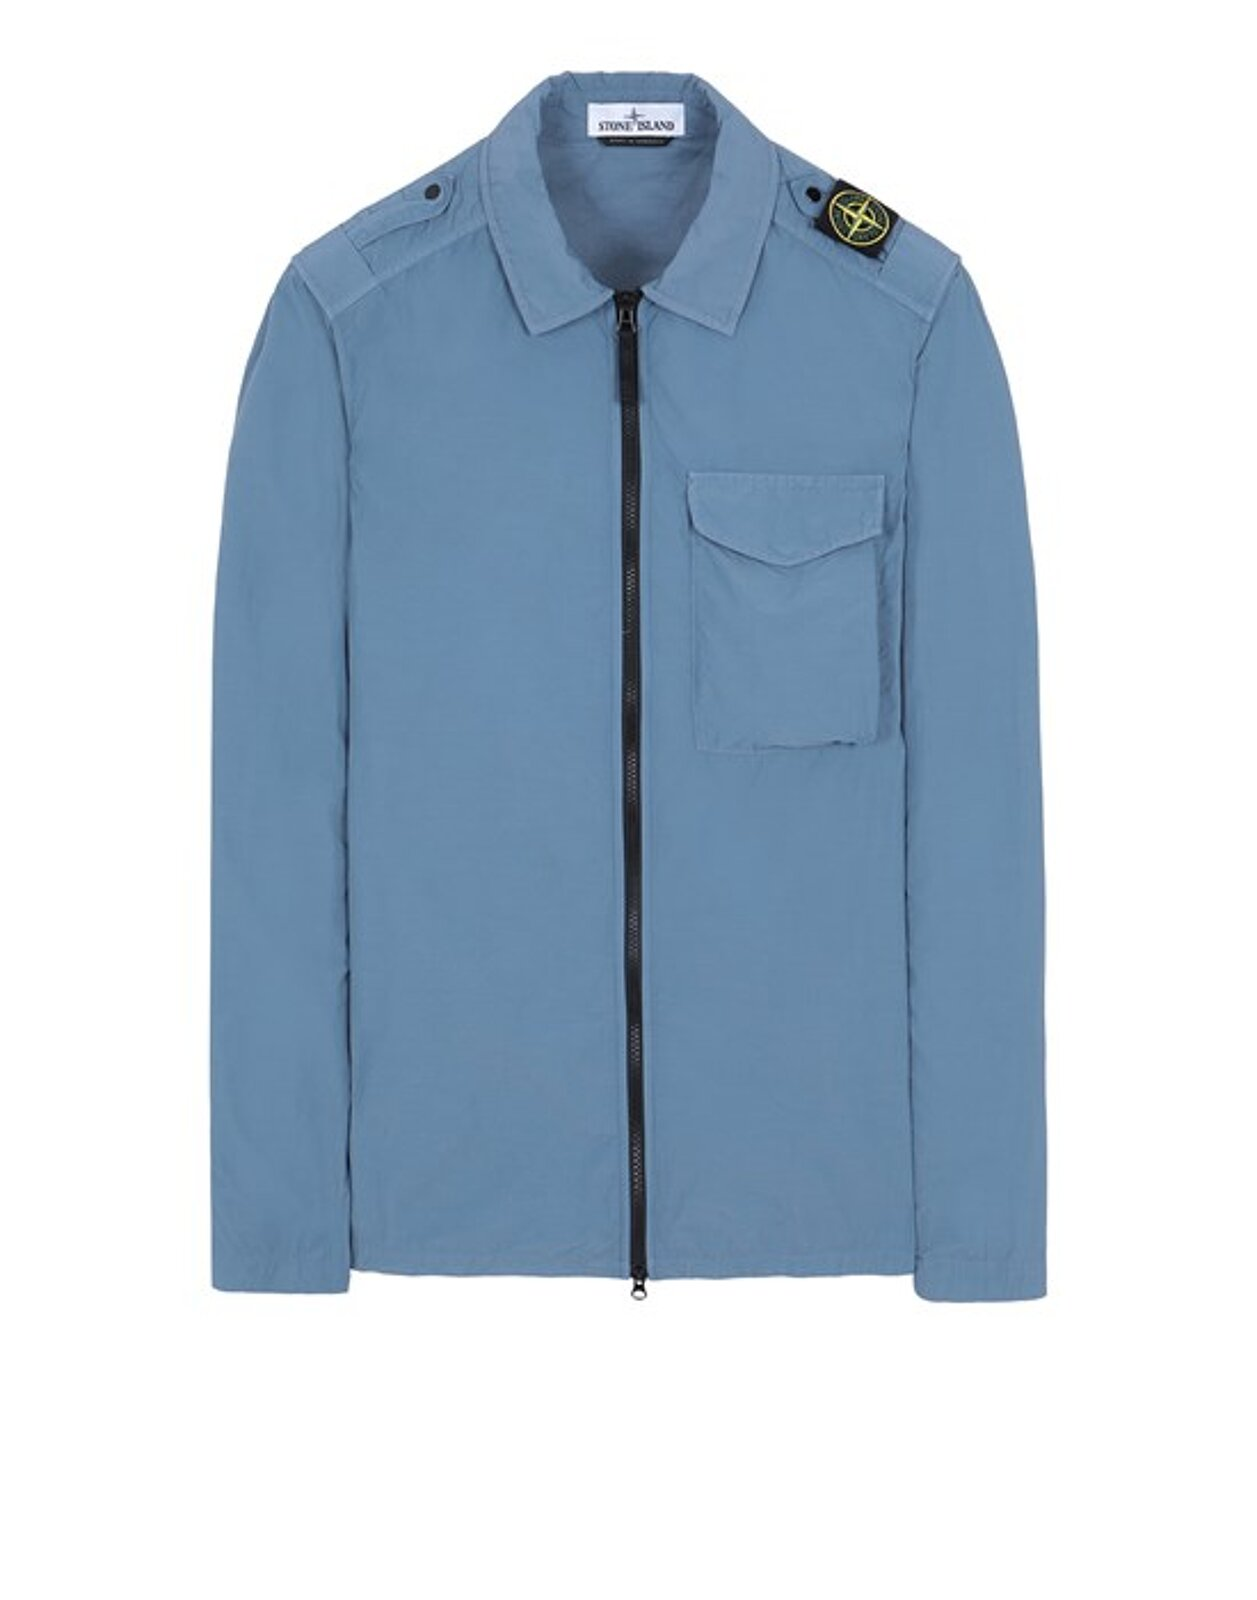 10802 Naslan Light - Stone Island